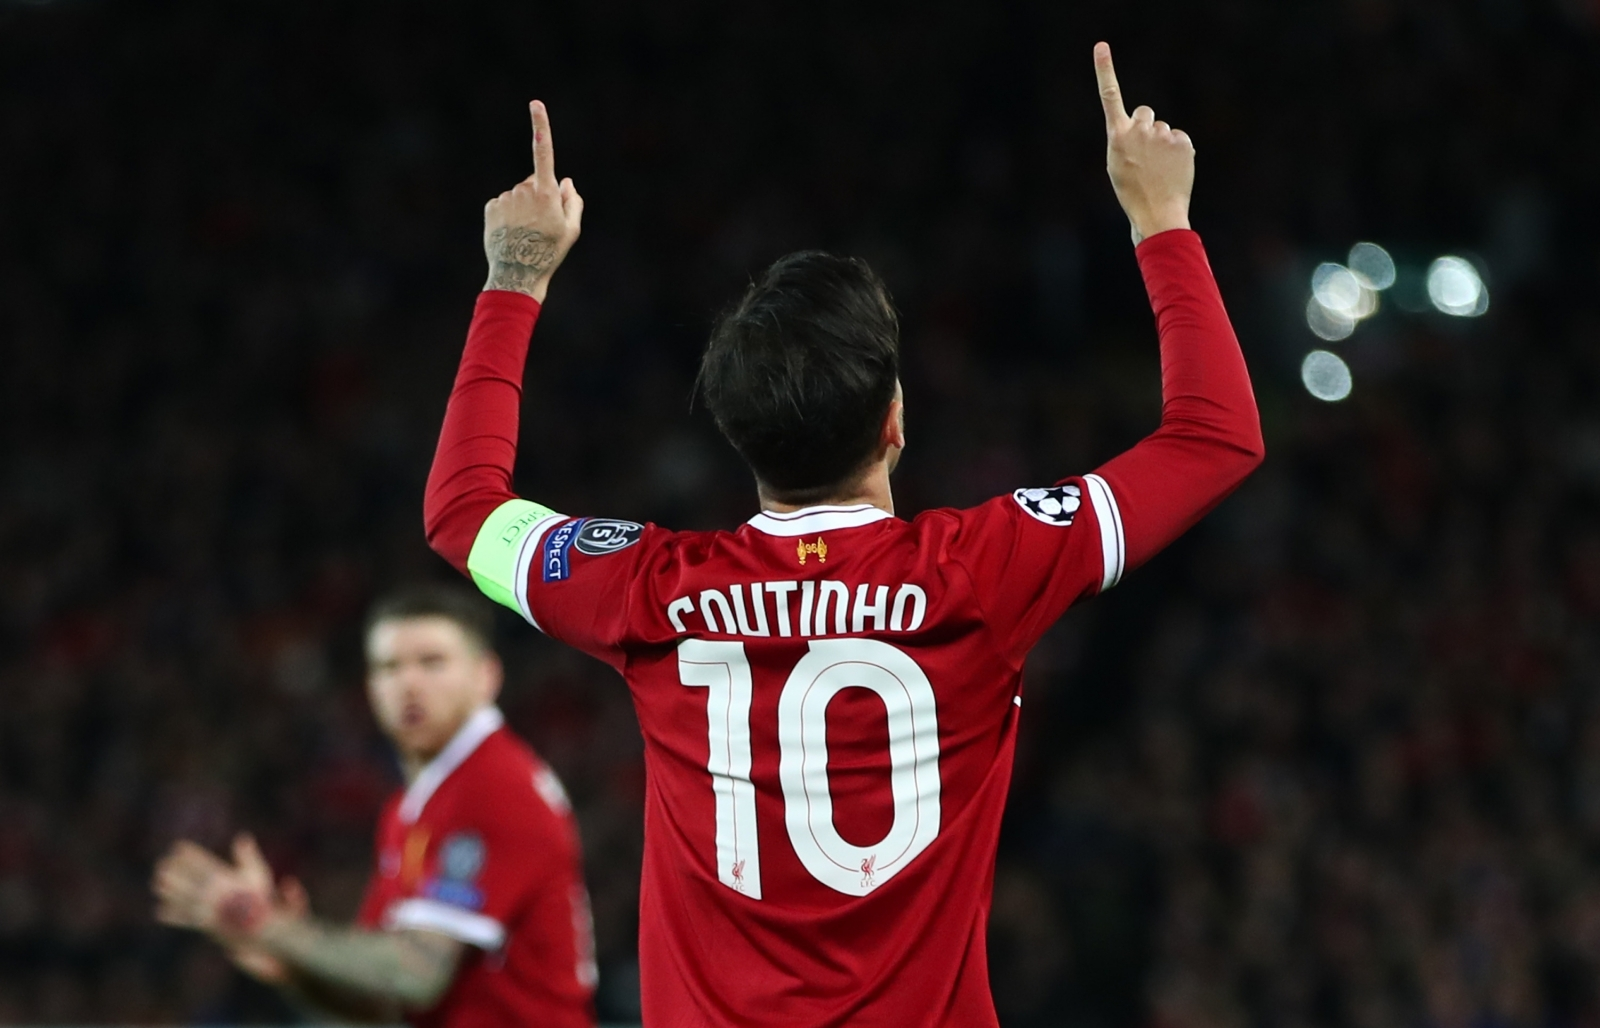 Coutinho gives an update on his future that will worry Liverpool fans